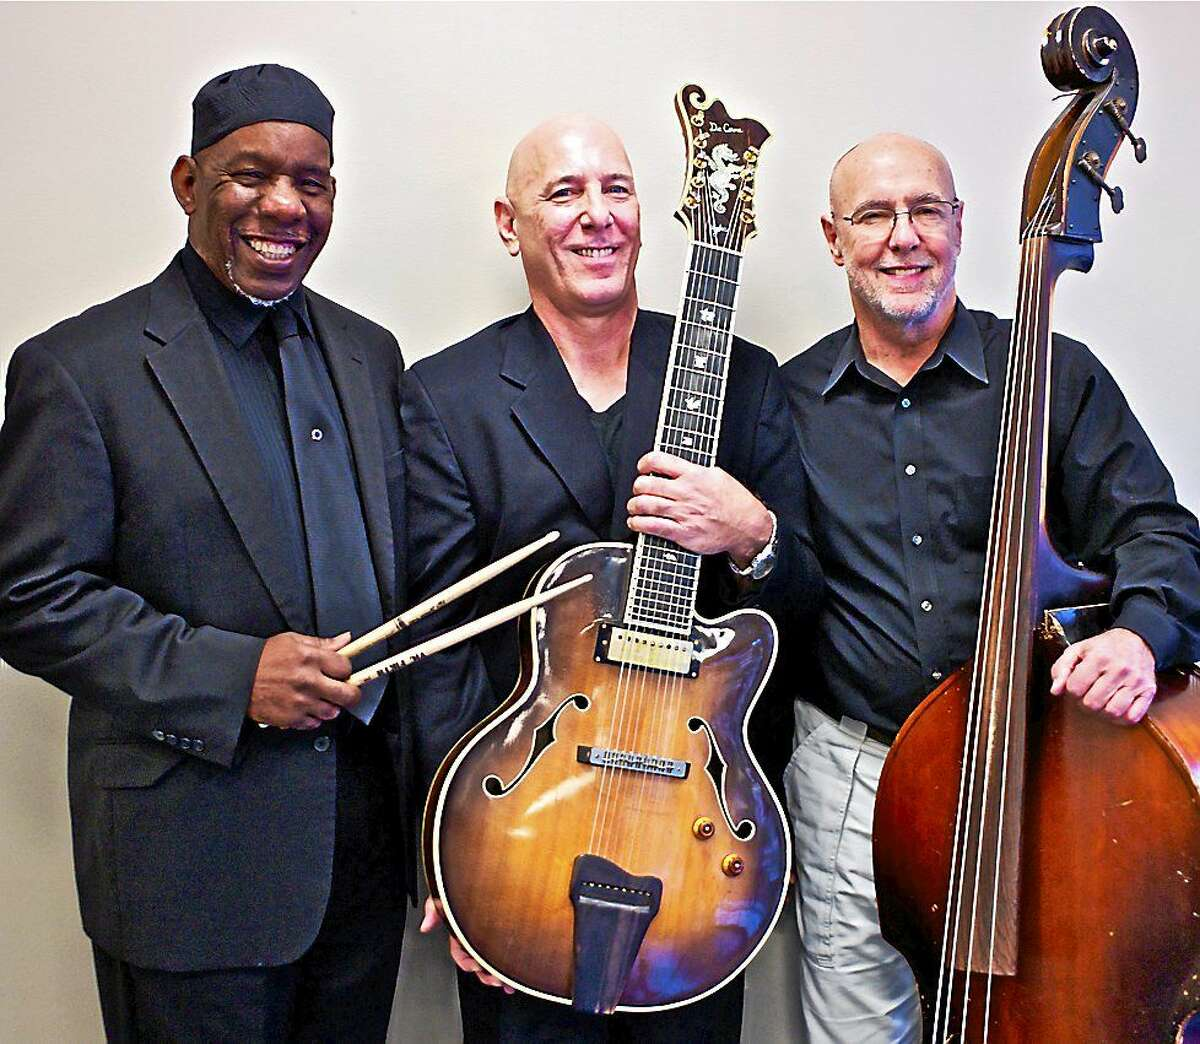 """NMS Jesse Hameen II (drums), left, Michael Coppola (guitar) and Jeff Fuller (bass) will perform in the Neighborhood Music School's Faculty Concert """"The Art of the Guitar Trio"""" at 12:10 p.m. Friday."""